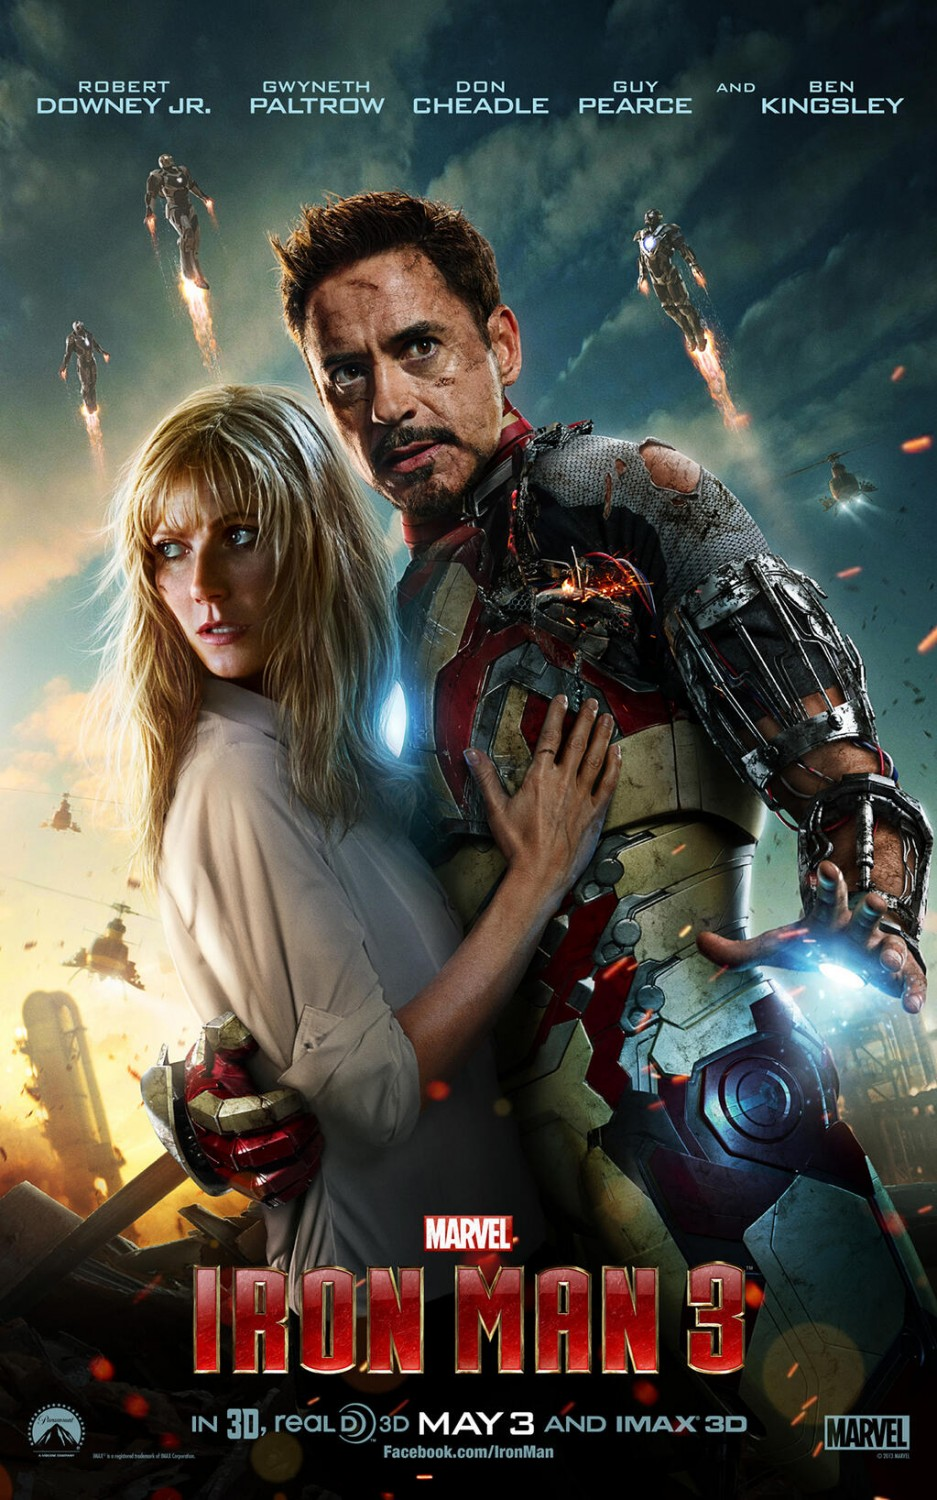 Iron man 3 teaser trailer for 3 by 3 prints